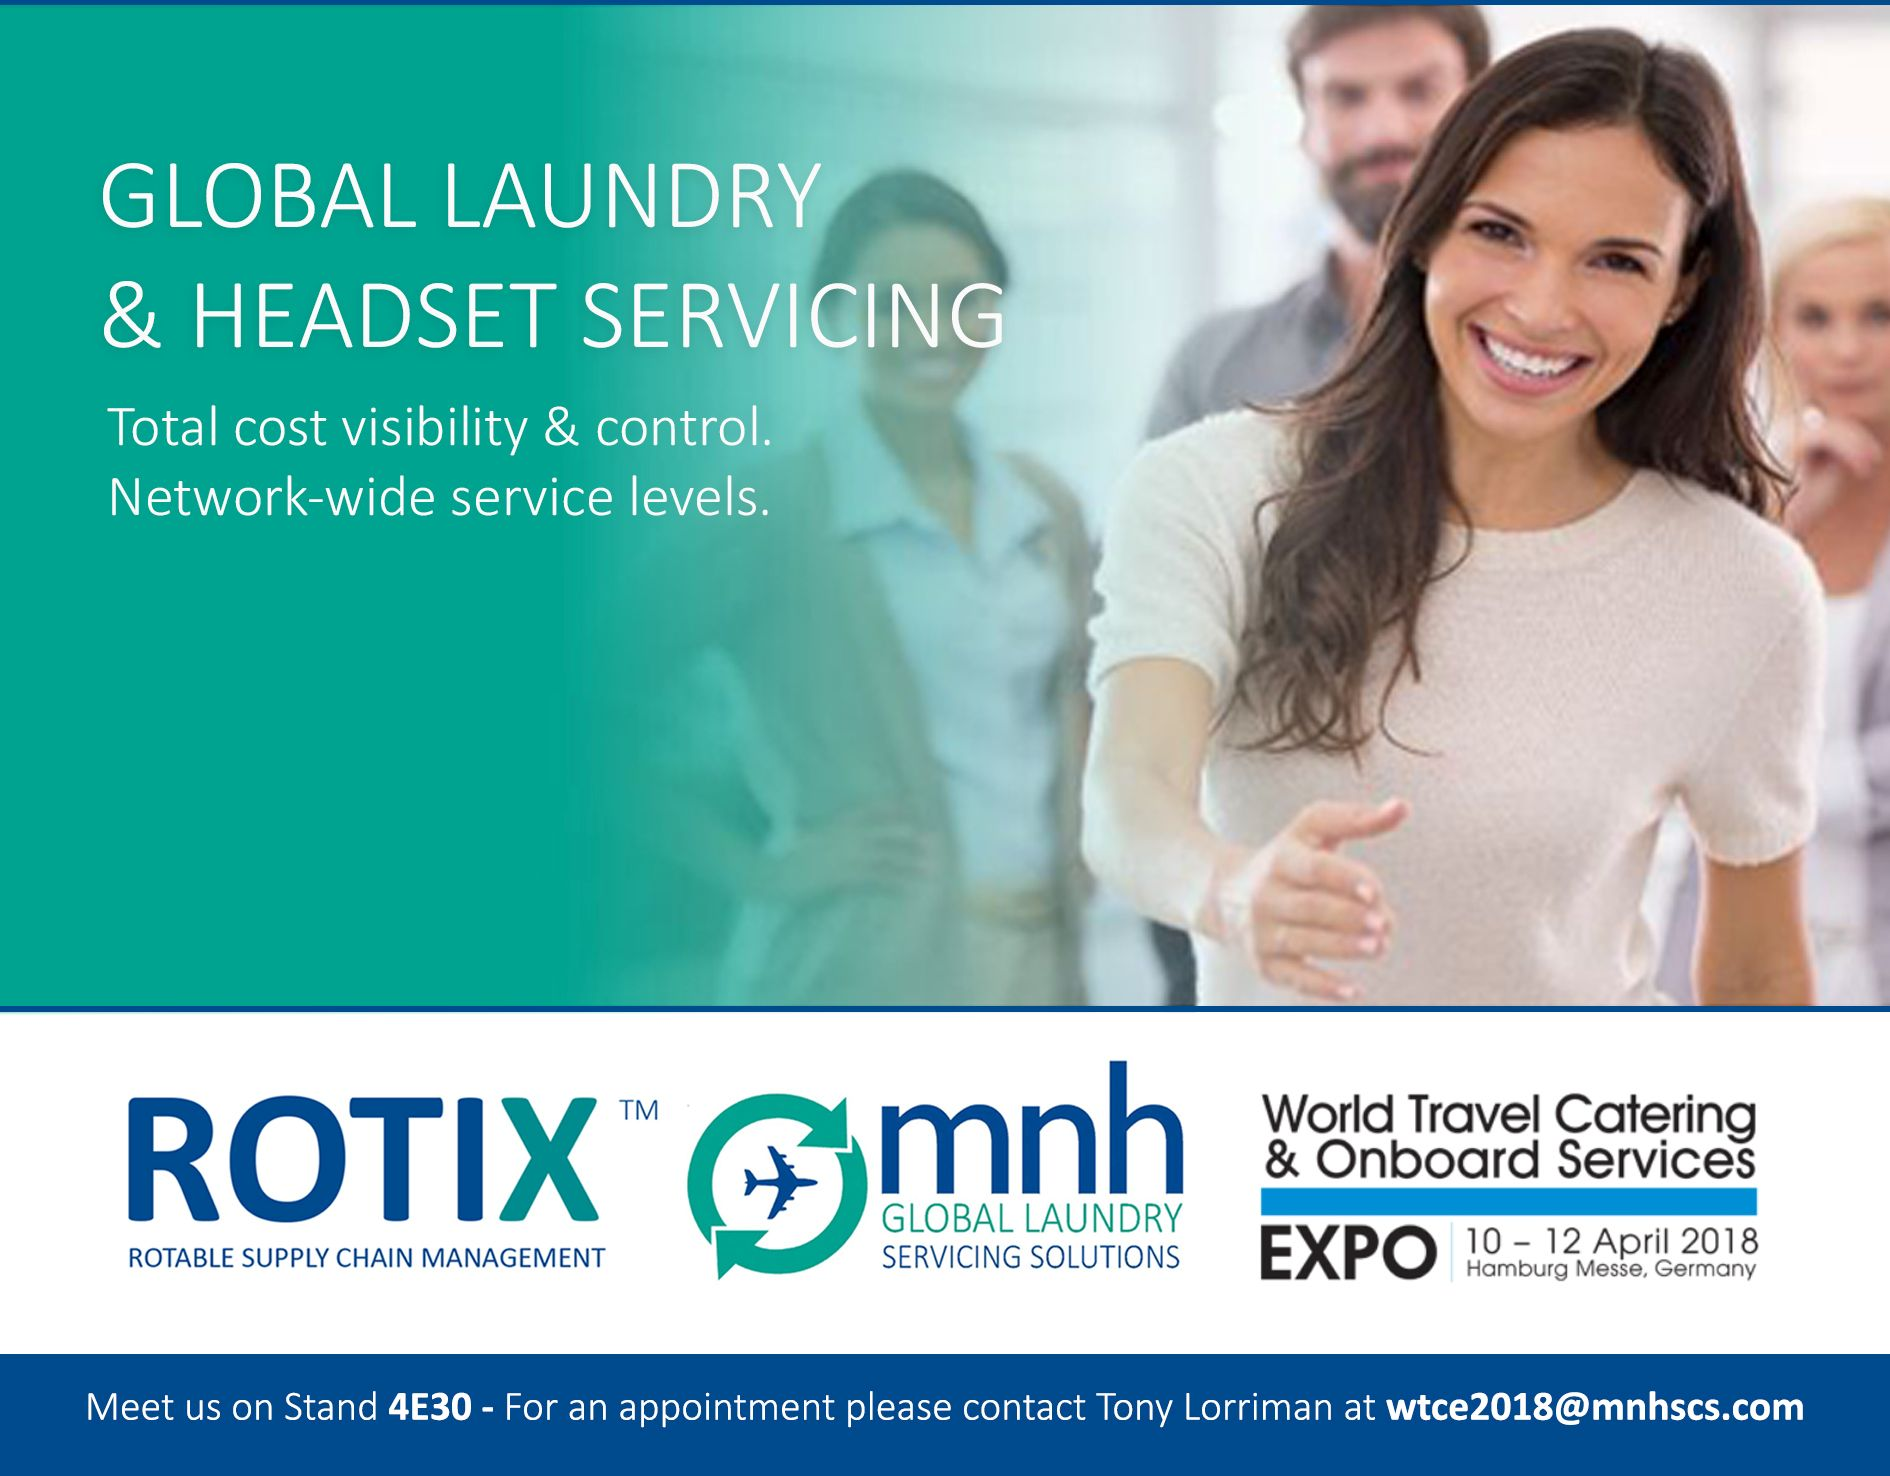 Global Laundry and Headset Servicing